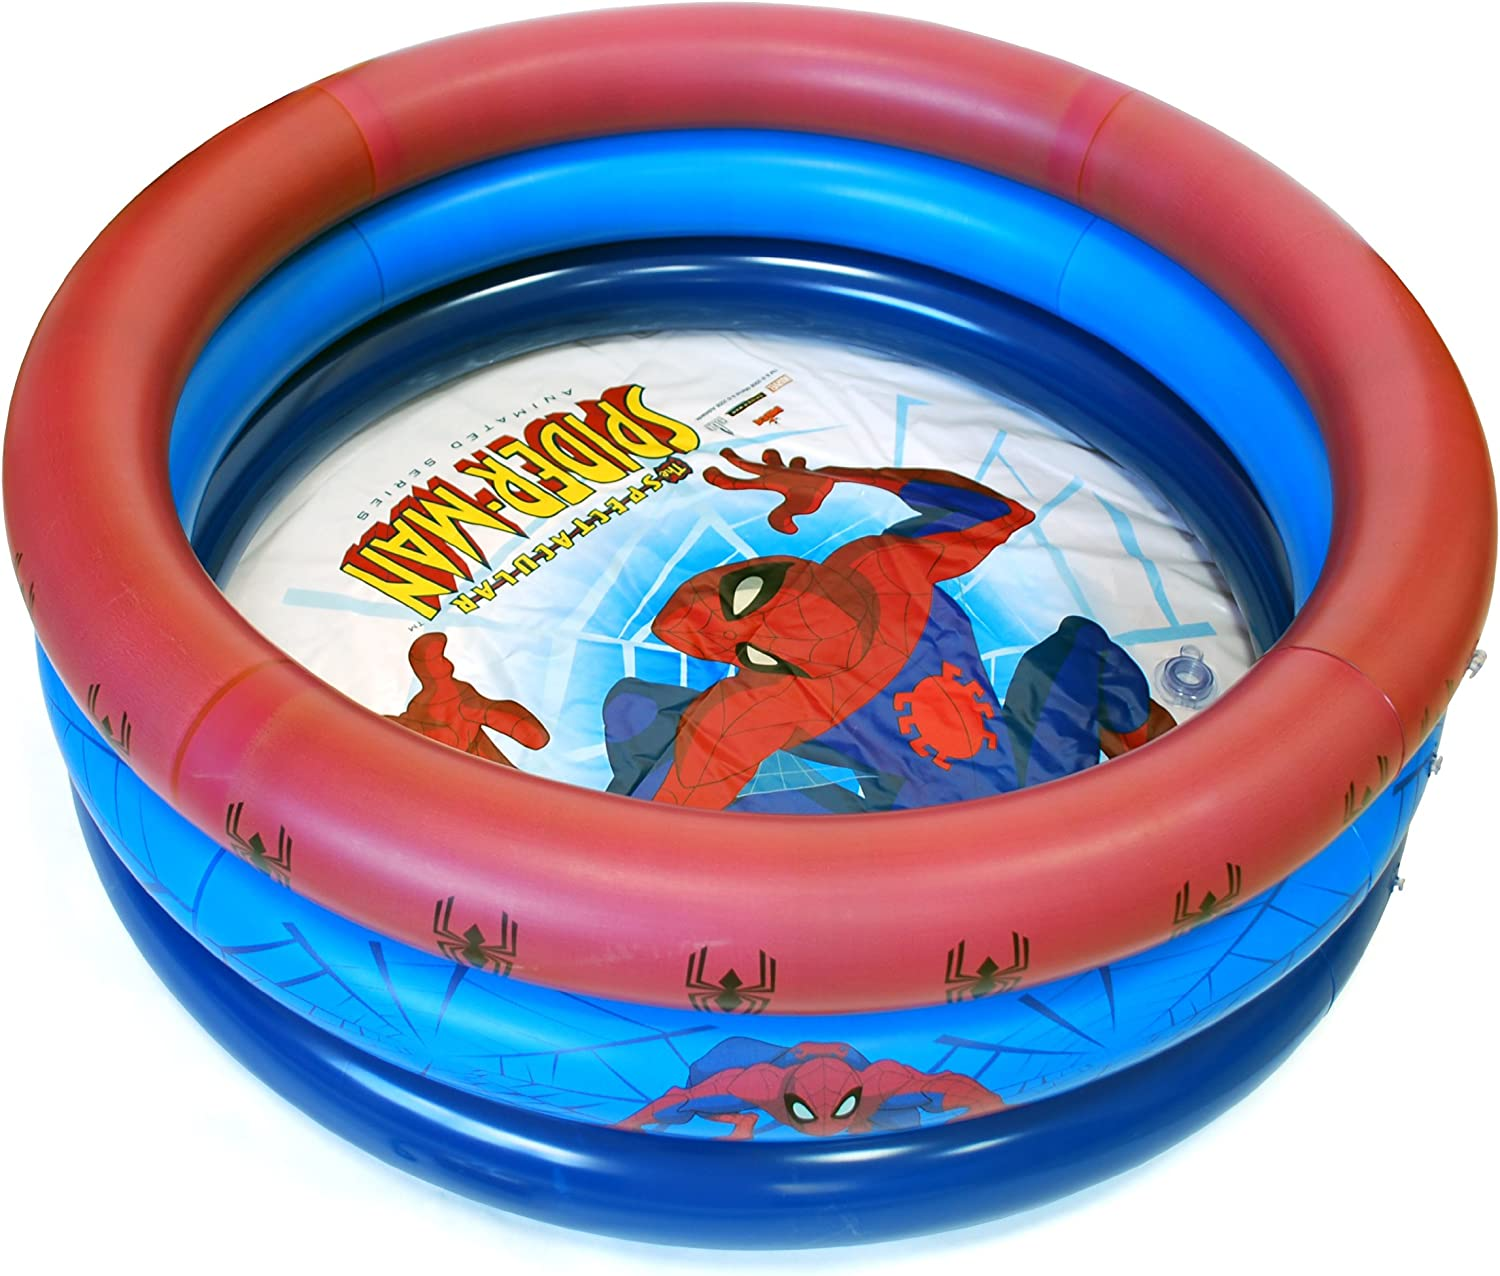 Spiderman - Piscina Hinchable (Saica 1235): Amazon.es: Jardín